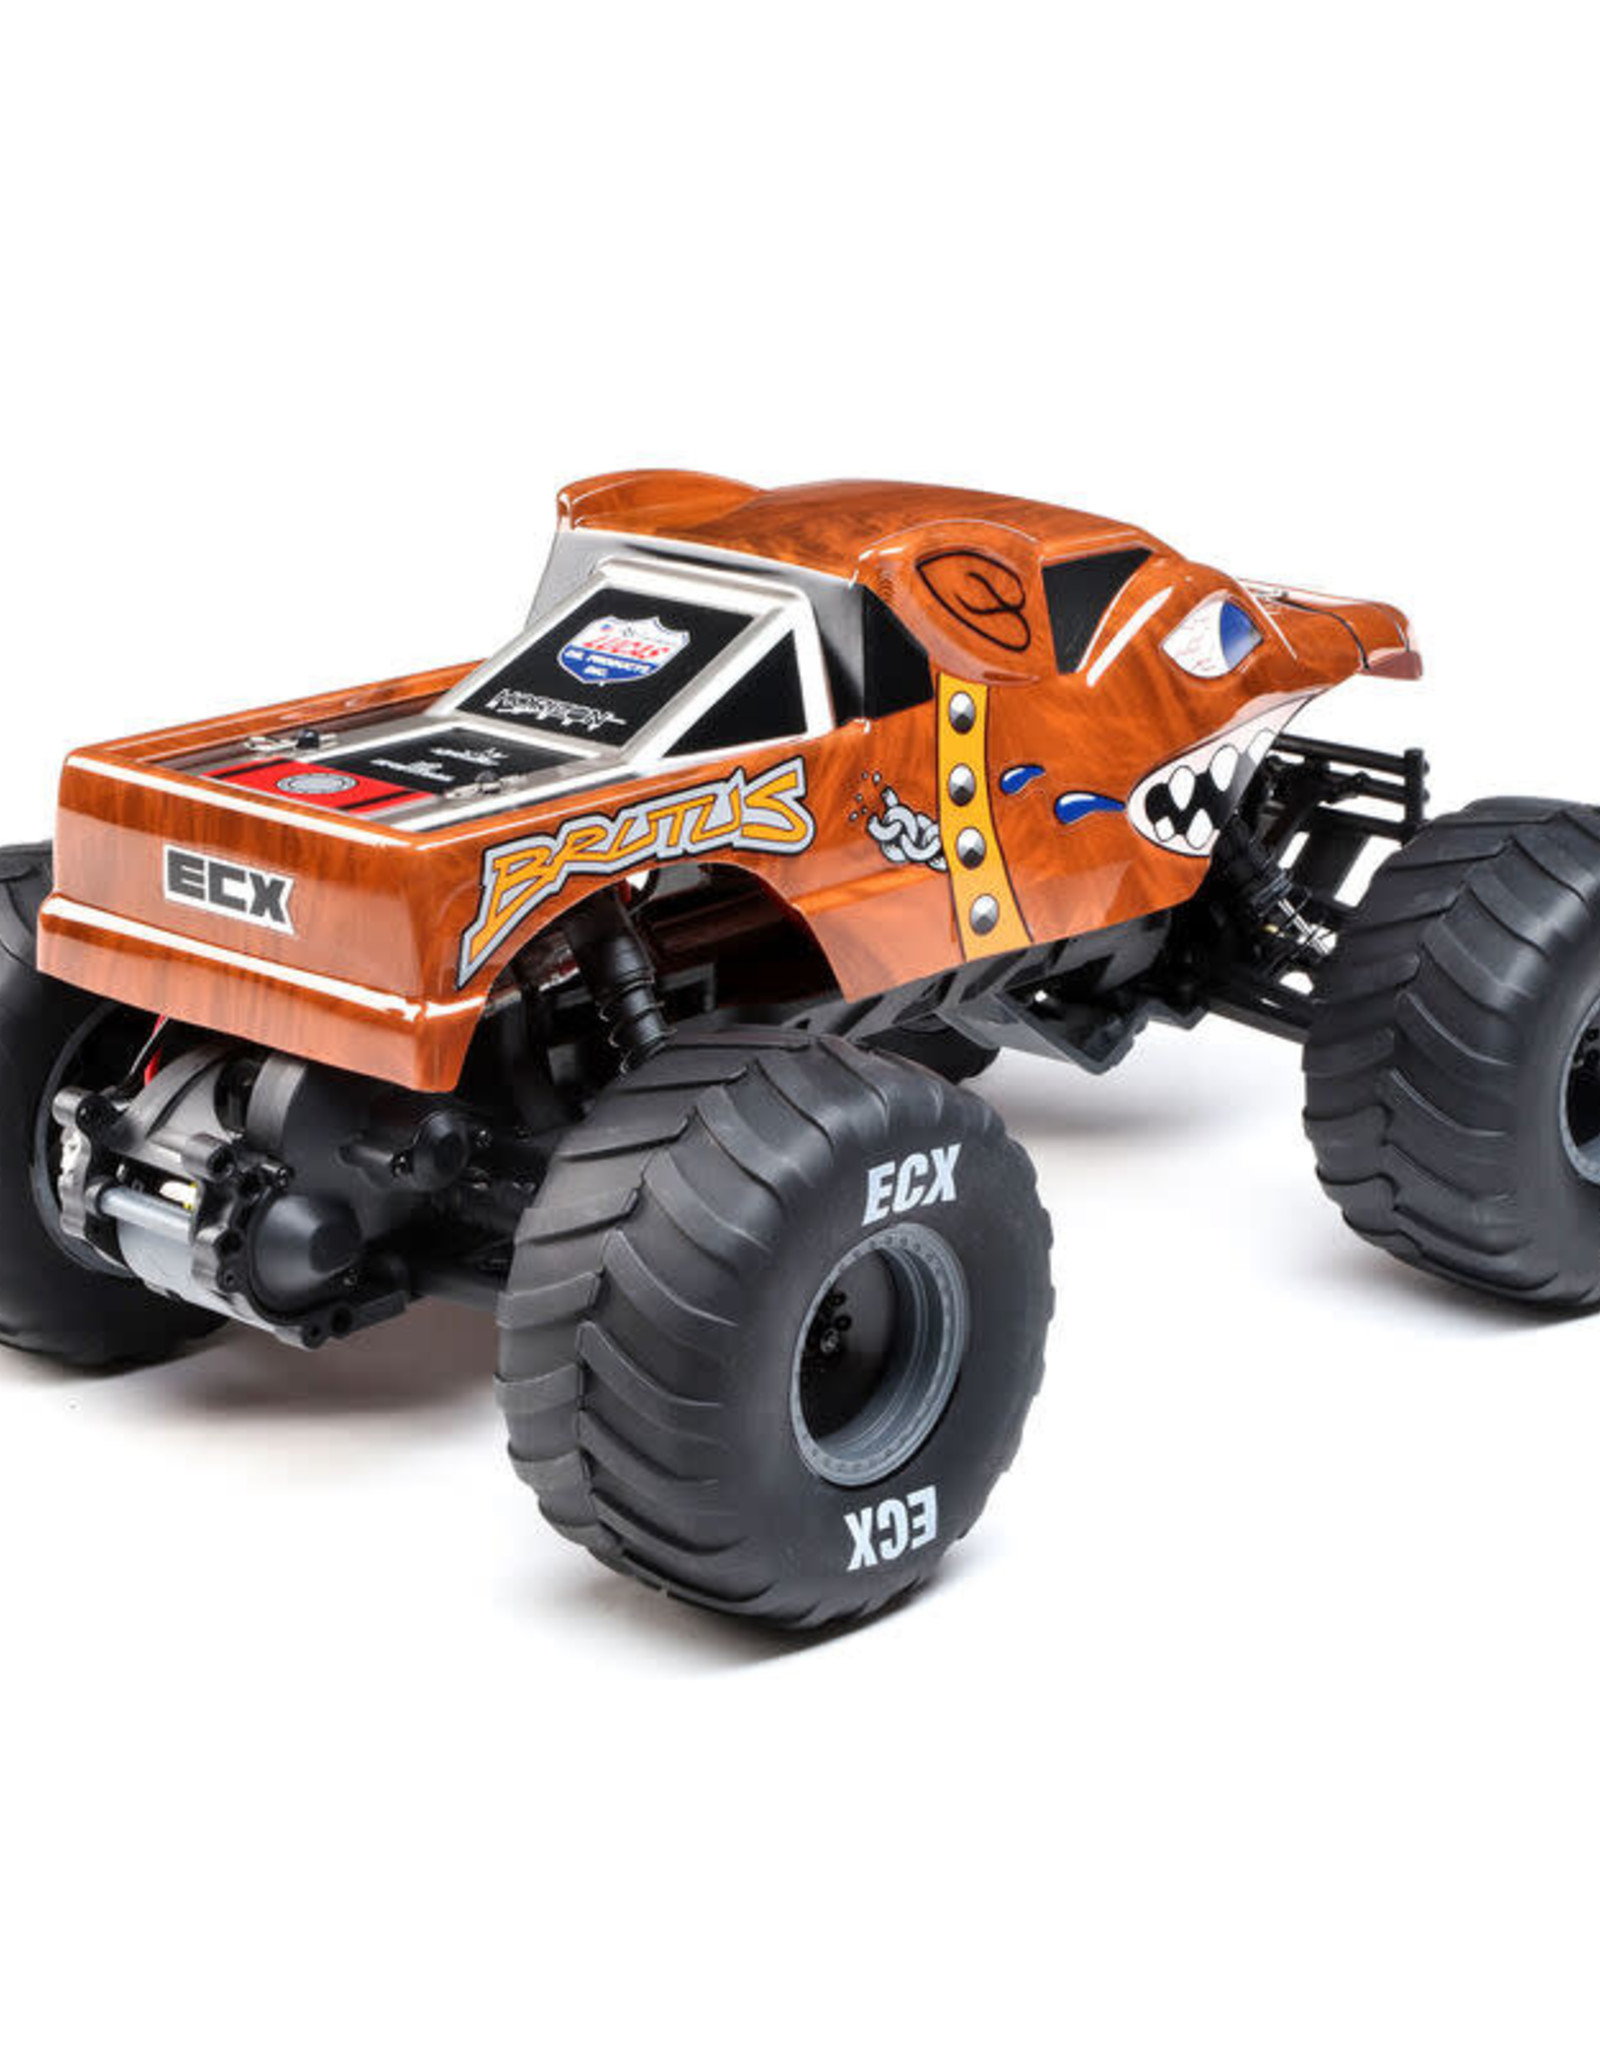 ECX ECX03055 1/10 Brutus 2wd Monster Truck Brushed RTR